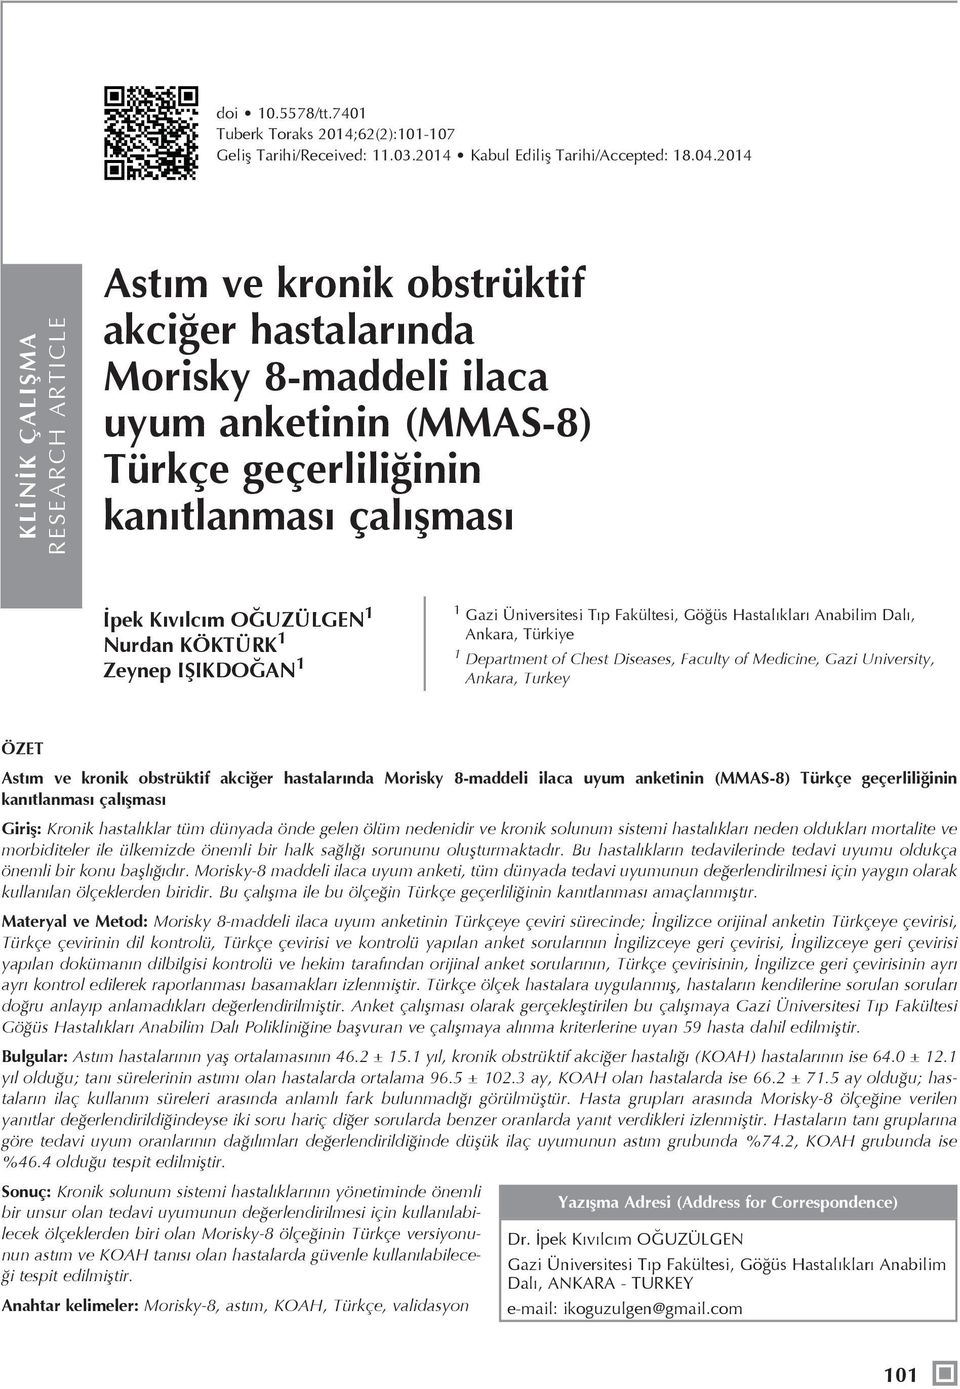 Nurdan KÖKTÜRK 1 Zeyne IŞIKDOĞAN 1 1 Gazi Üniversitesi Tı Fakültesi, Göğüs Hastalıkları Anabilim Dalı, Ankara, Türkiye 1 Deartment of Chest Diseases, Faculty of Medicine, Gazi University, Ankara,